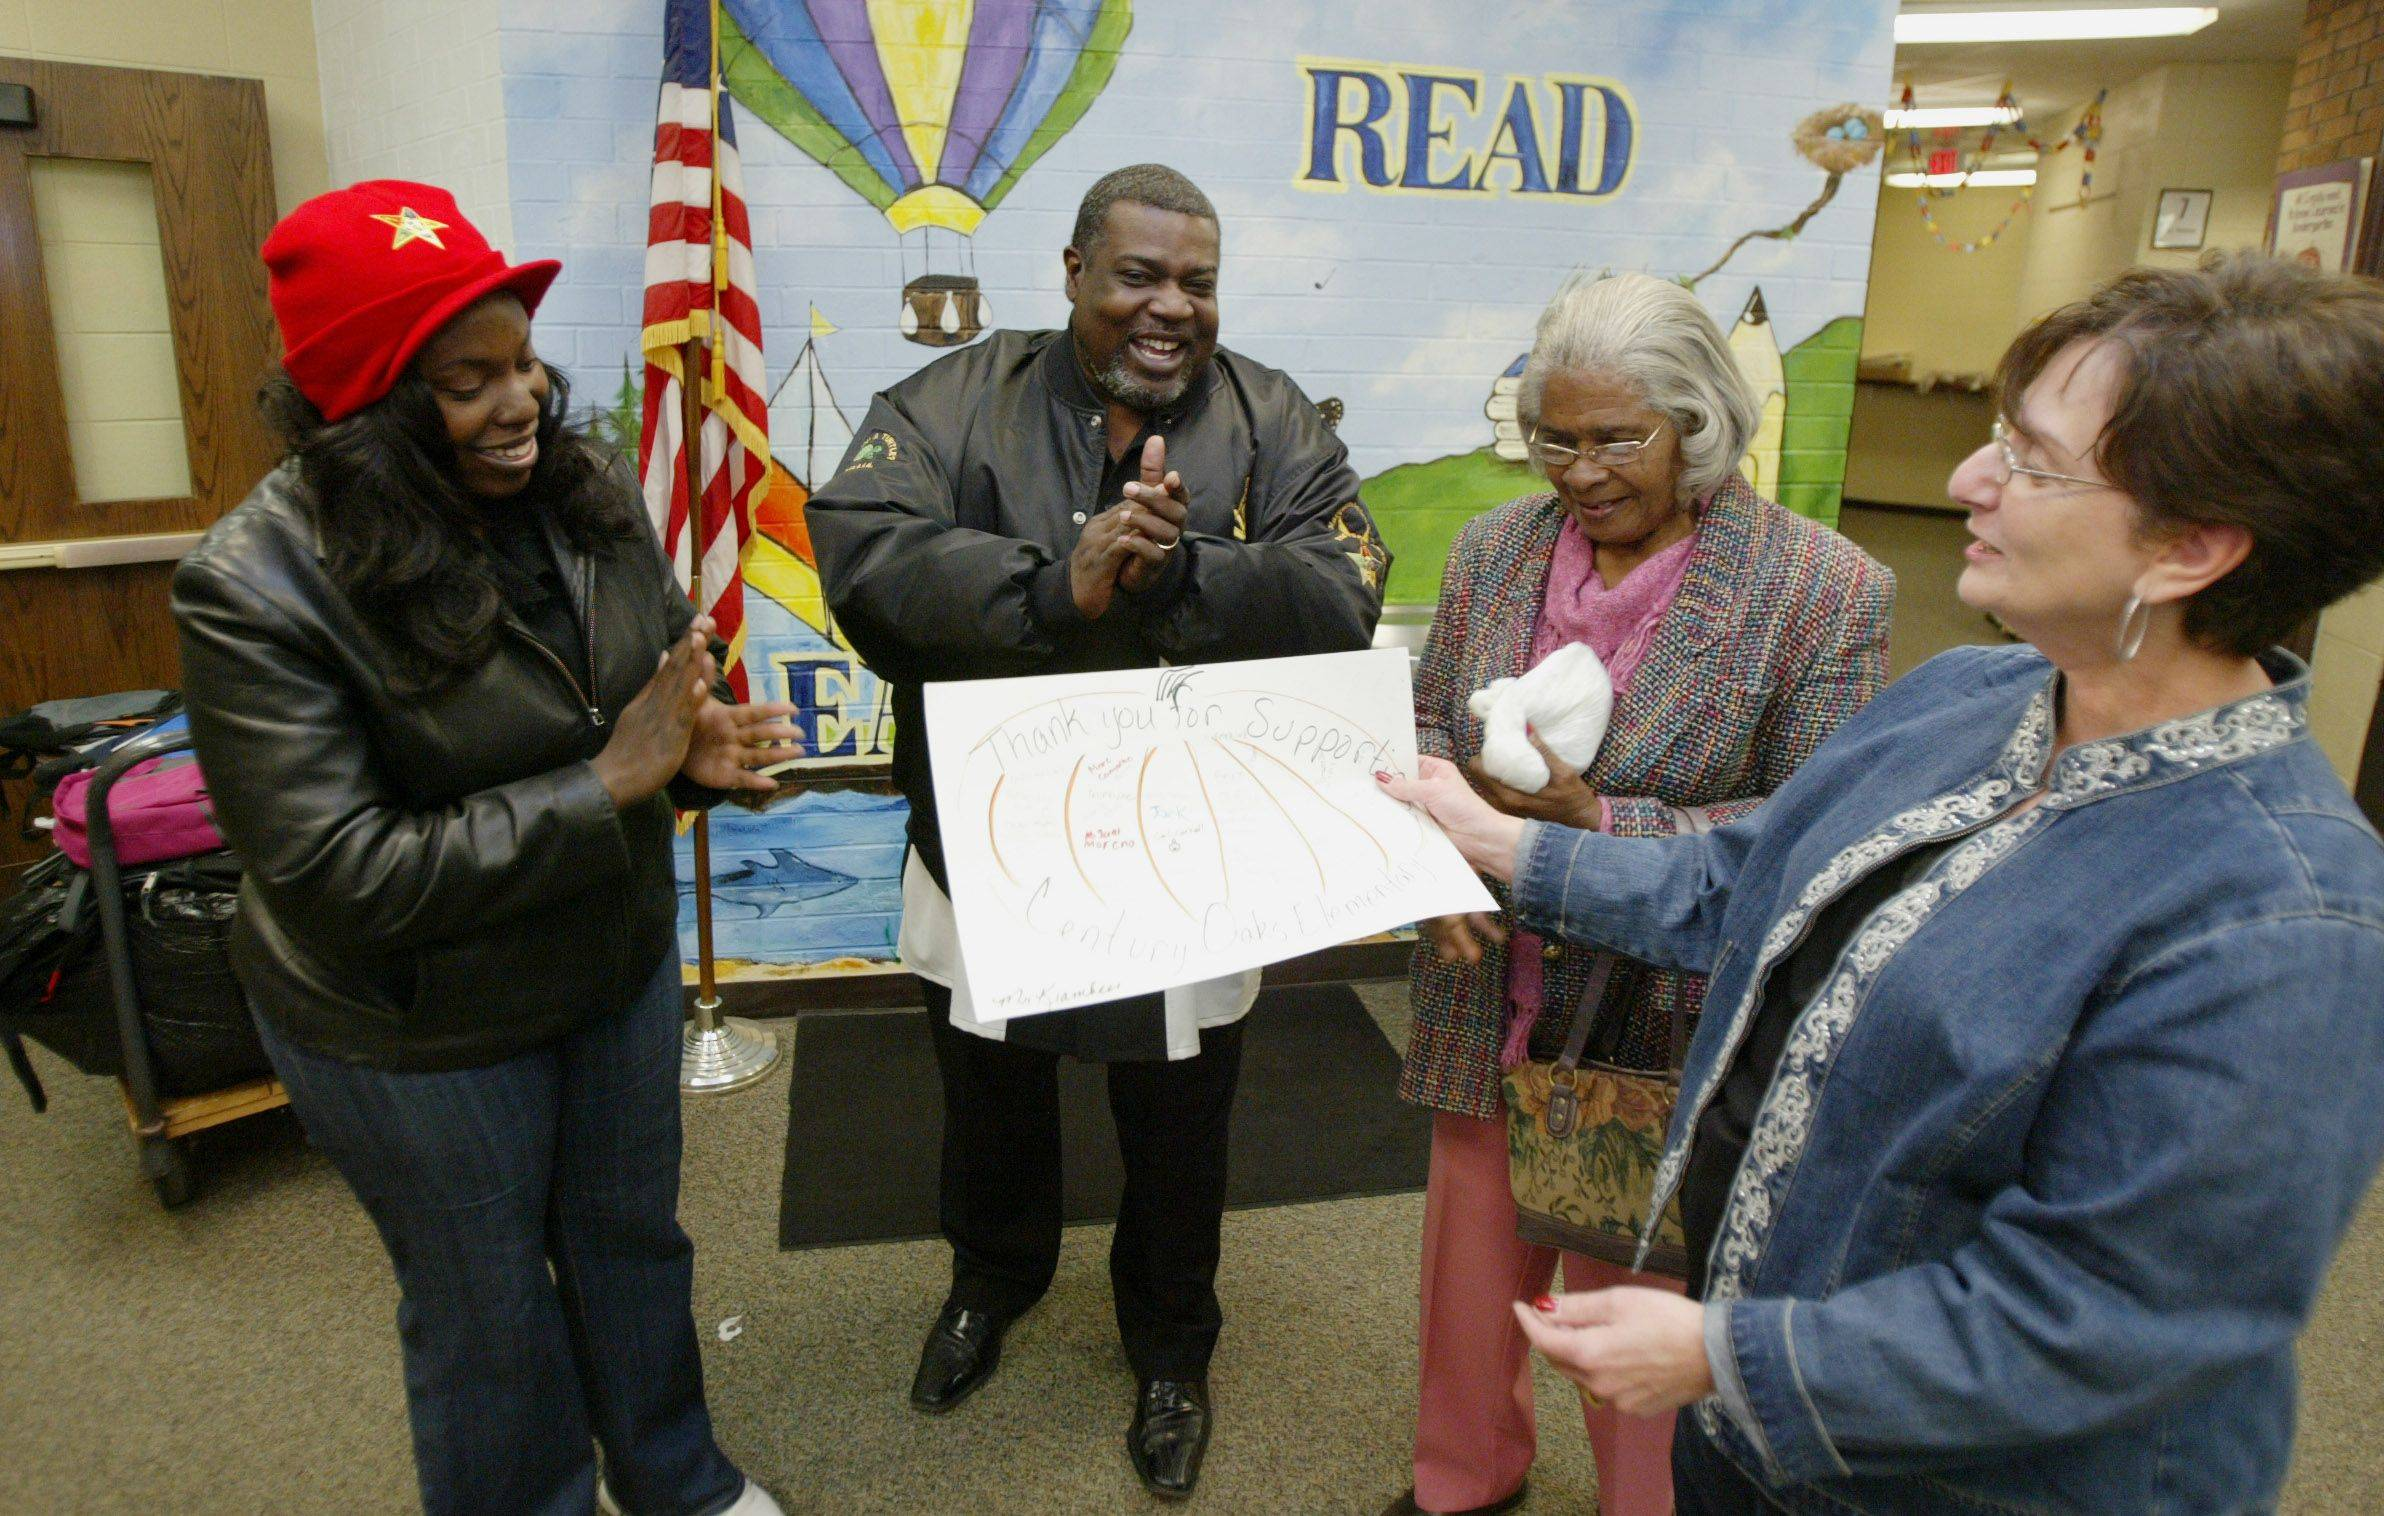 Century Oaks Elementary principal Kathy Marden presents a thank-you card to Ashanti' Harris, left, Timothy Harris and Martha Wallace Friday morning after the three brought a cart full of school supplies and gift certificates worth $500 as a donation to a classroom at the school. Third-grade teacher Jen Stotlar's class was randomly chosen to receive the supplies that were donated by the brothers of the Order of the Eastern Star Watch City Lodge #131 and the sisters of Fox Valley Chapter #137. Harris is an OES past master and Wallace is a chaplain with the group which has adopted the school and plans to continue to donate supplies to help keep classrooms stocked.